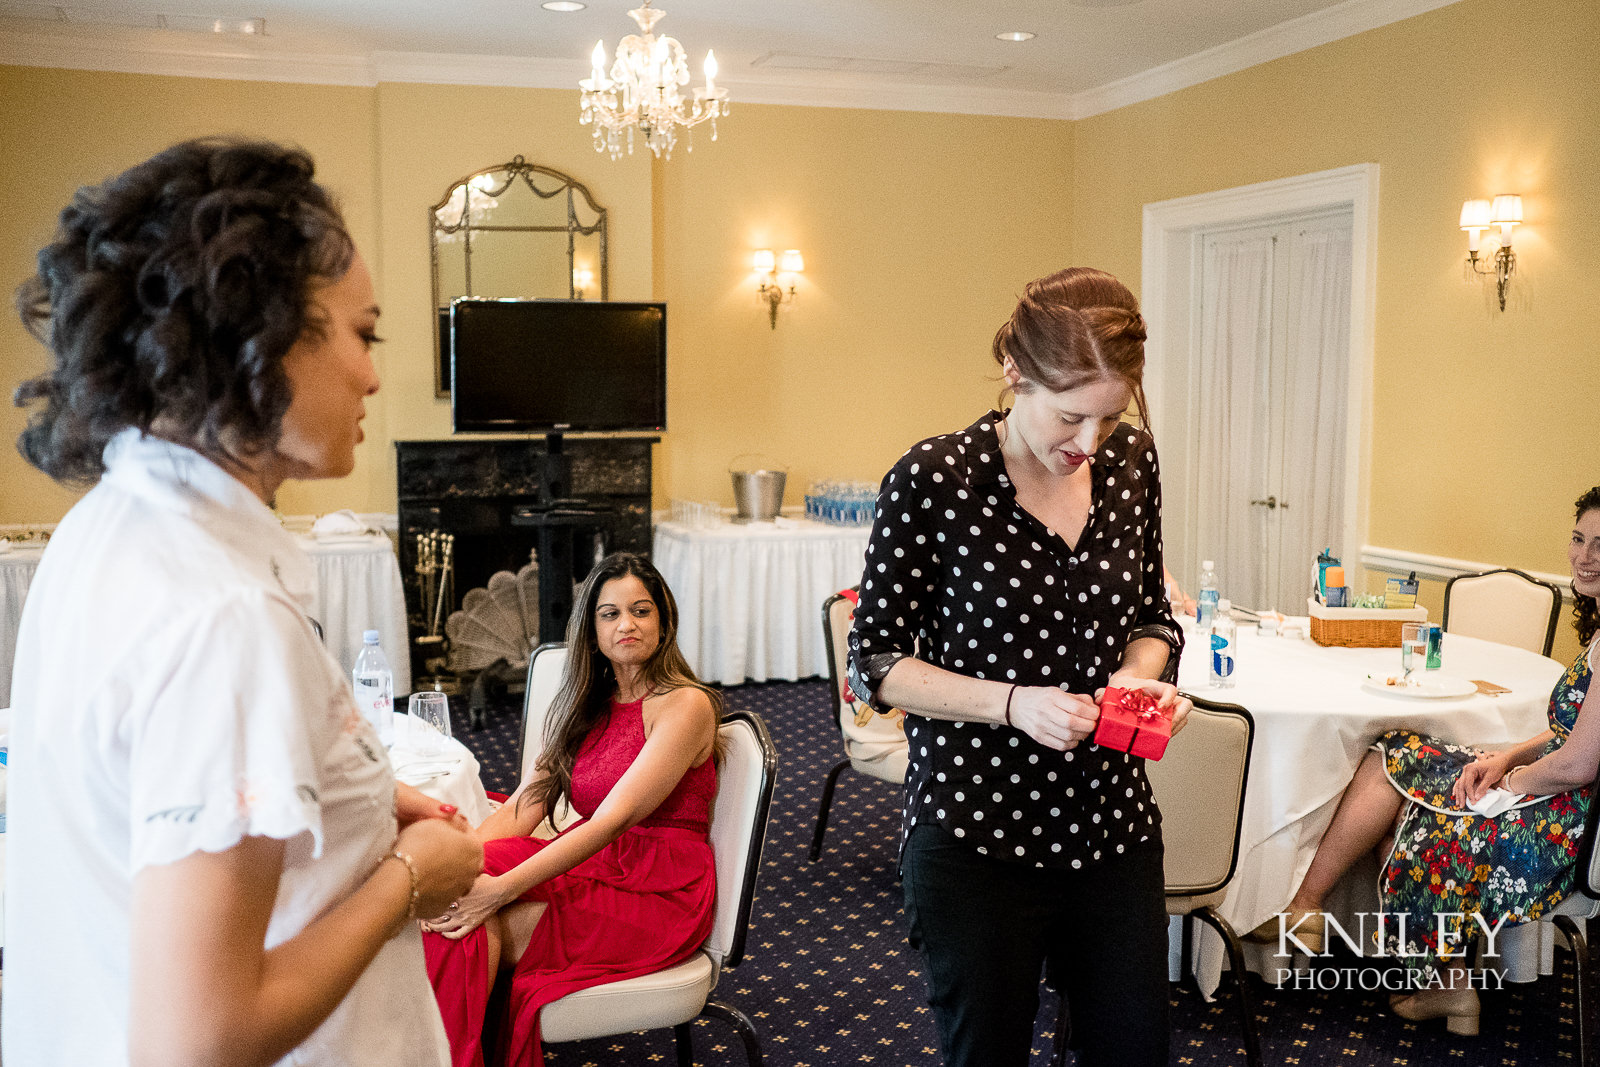 019 - Rochester NY wedding pictures - Genesee Valley Club - Ceremony and Reception - XT2A5186.jpg